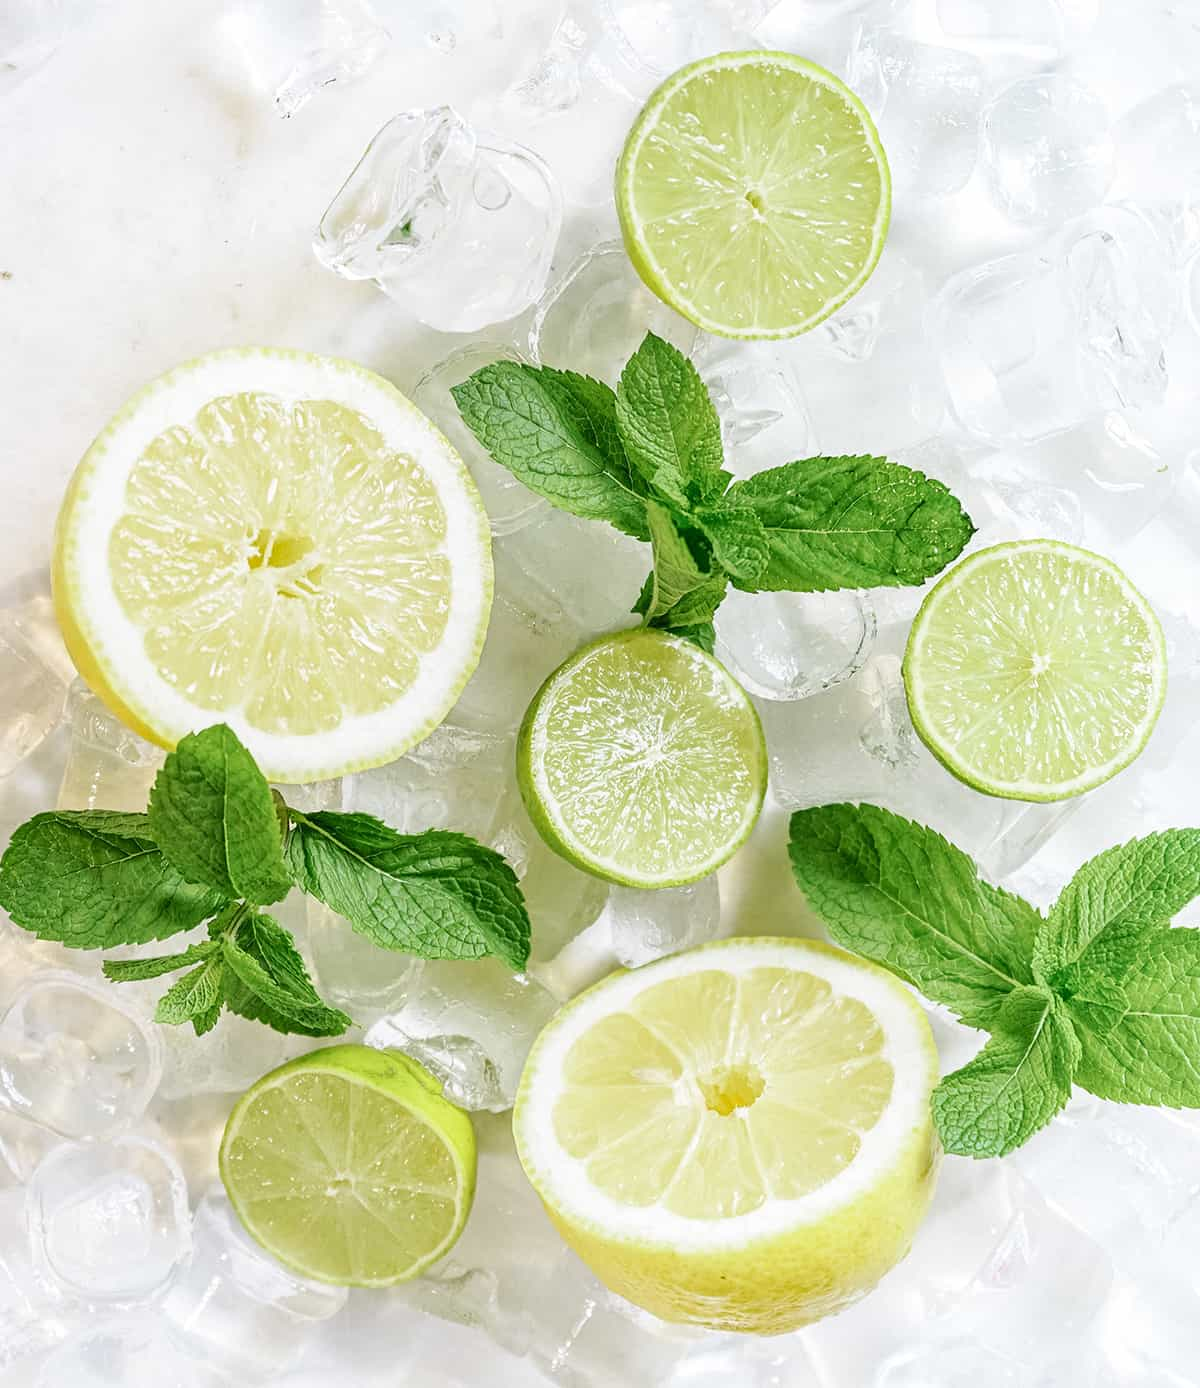 lemons and limes on a white table with ice and mint